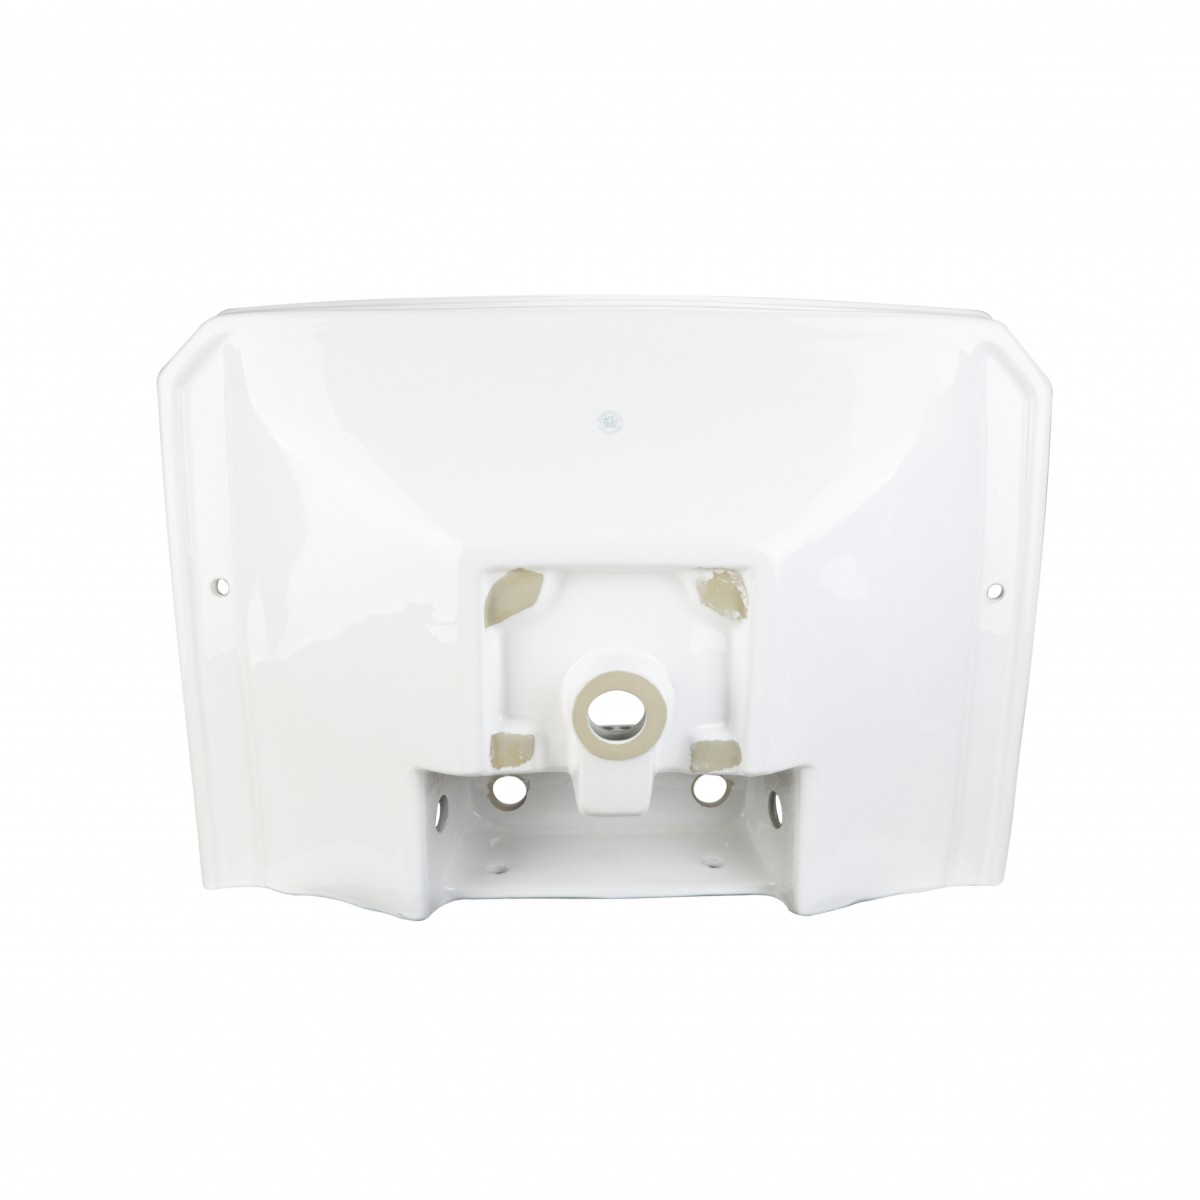 Renovators Supply Large Bathroom White Pedestal Sink 8 Wide Spread Faucet Holes Widespread Pedestal Sink Modern Bathroom Pedestal Sink Classic Bathroom Sinks